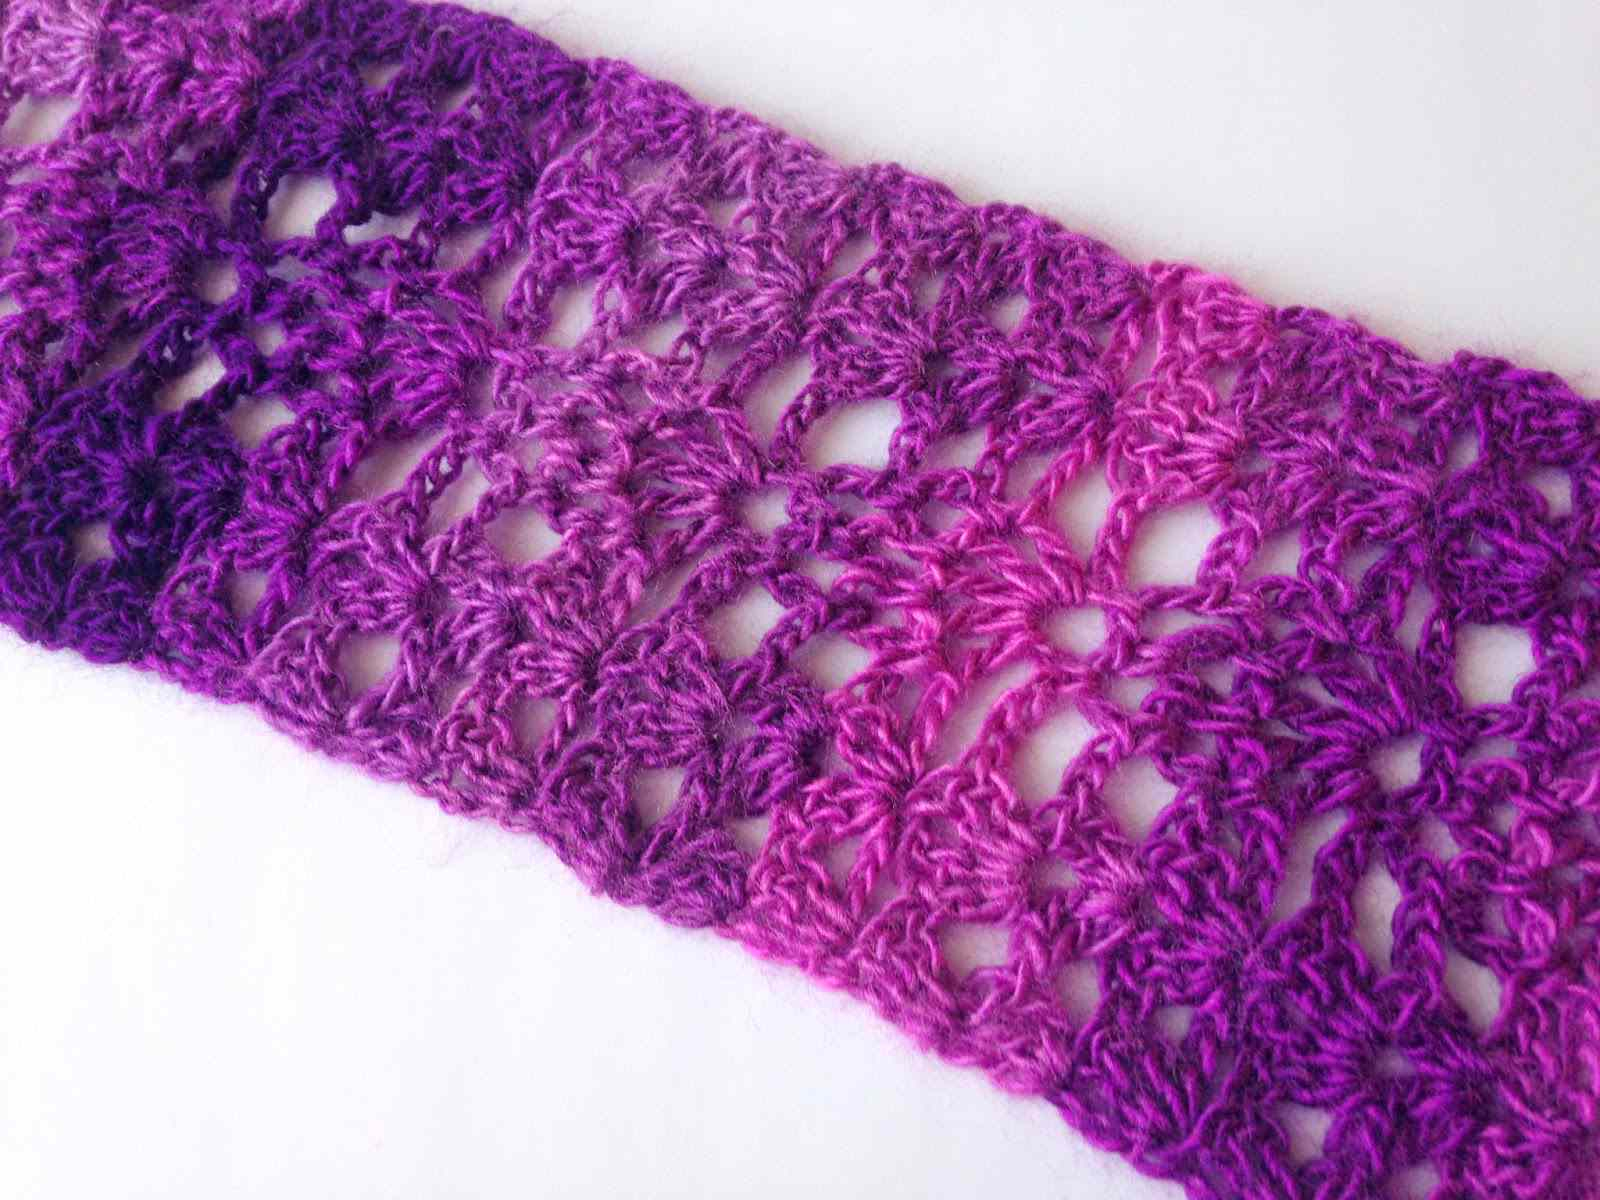 10 Easy Free Crochet Lace Scarf Patterns - Free Printable Crochet Scarf Patterns